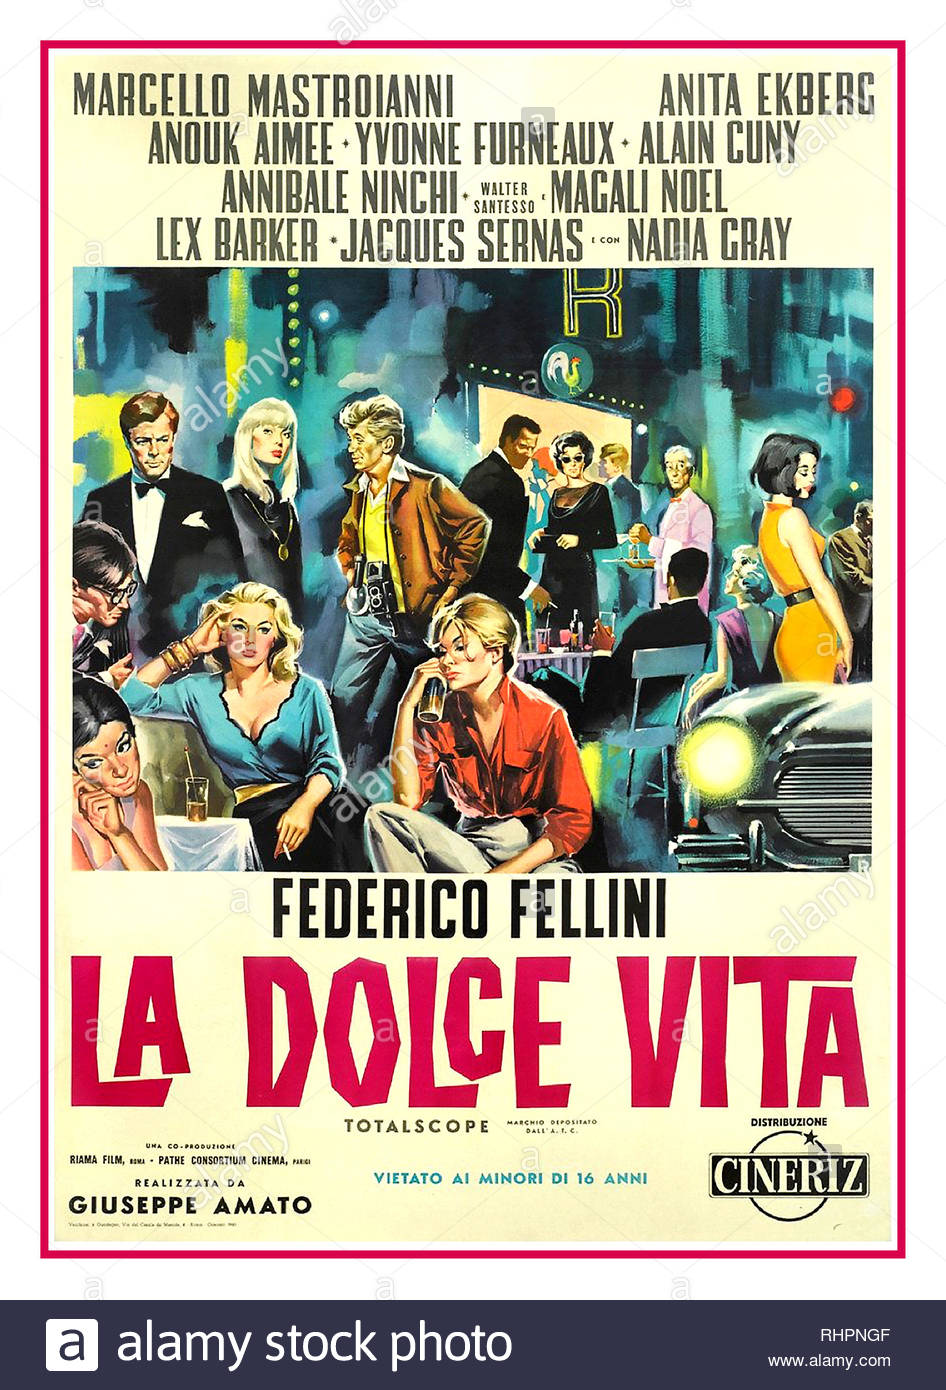 e8c0d0ff840 LA DOLCE VITA 1960 Vintage Movie Poster Italian film poster for La Dolce  Vita from 1960